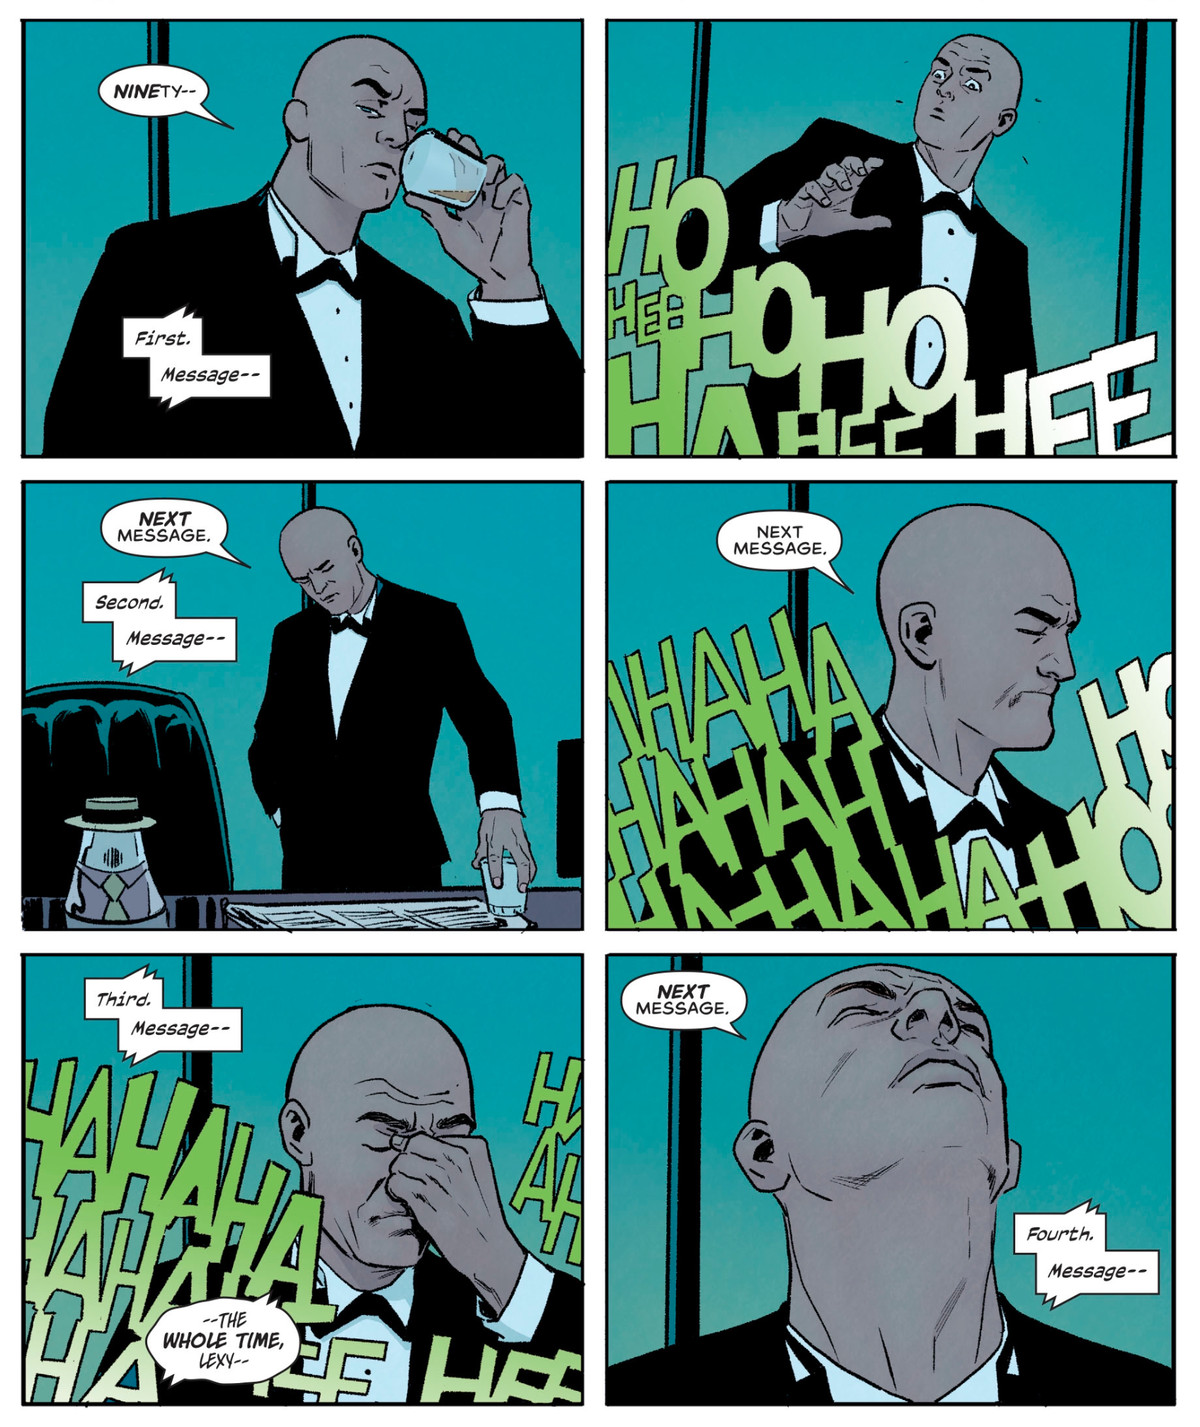 Lex Luthor checks his 90 voicemails, but they're all the Joker laughing at him after finding out that Clark Kent was Superman all along, in Superman: Villains #1, DC Comics (2020).